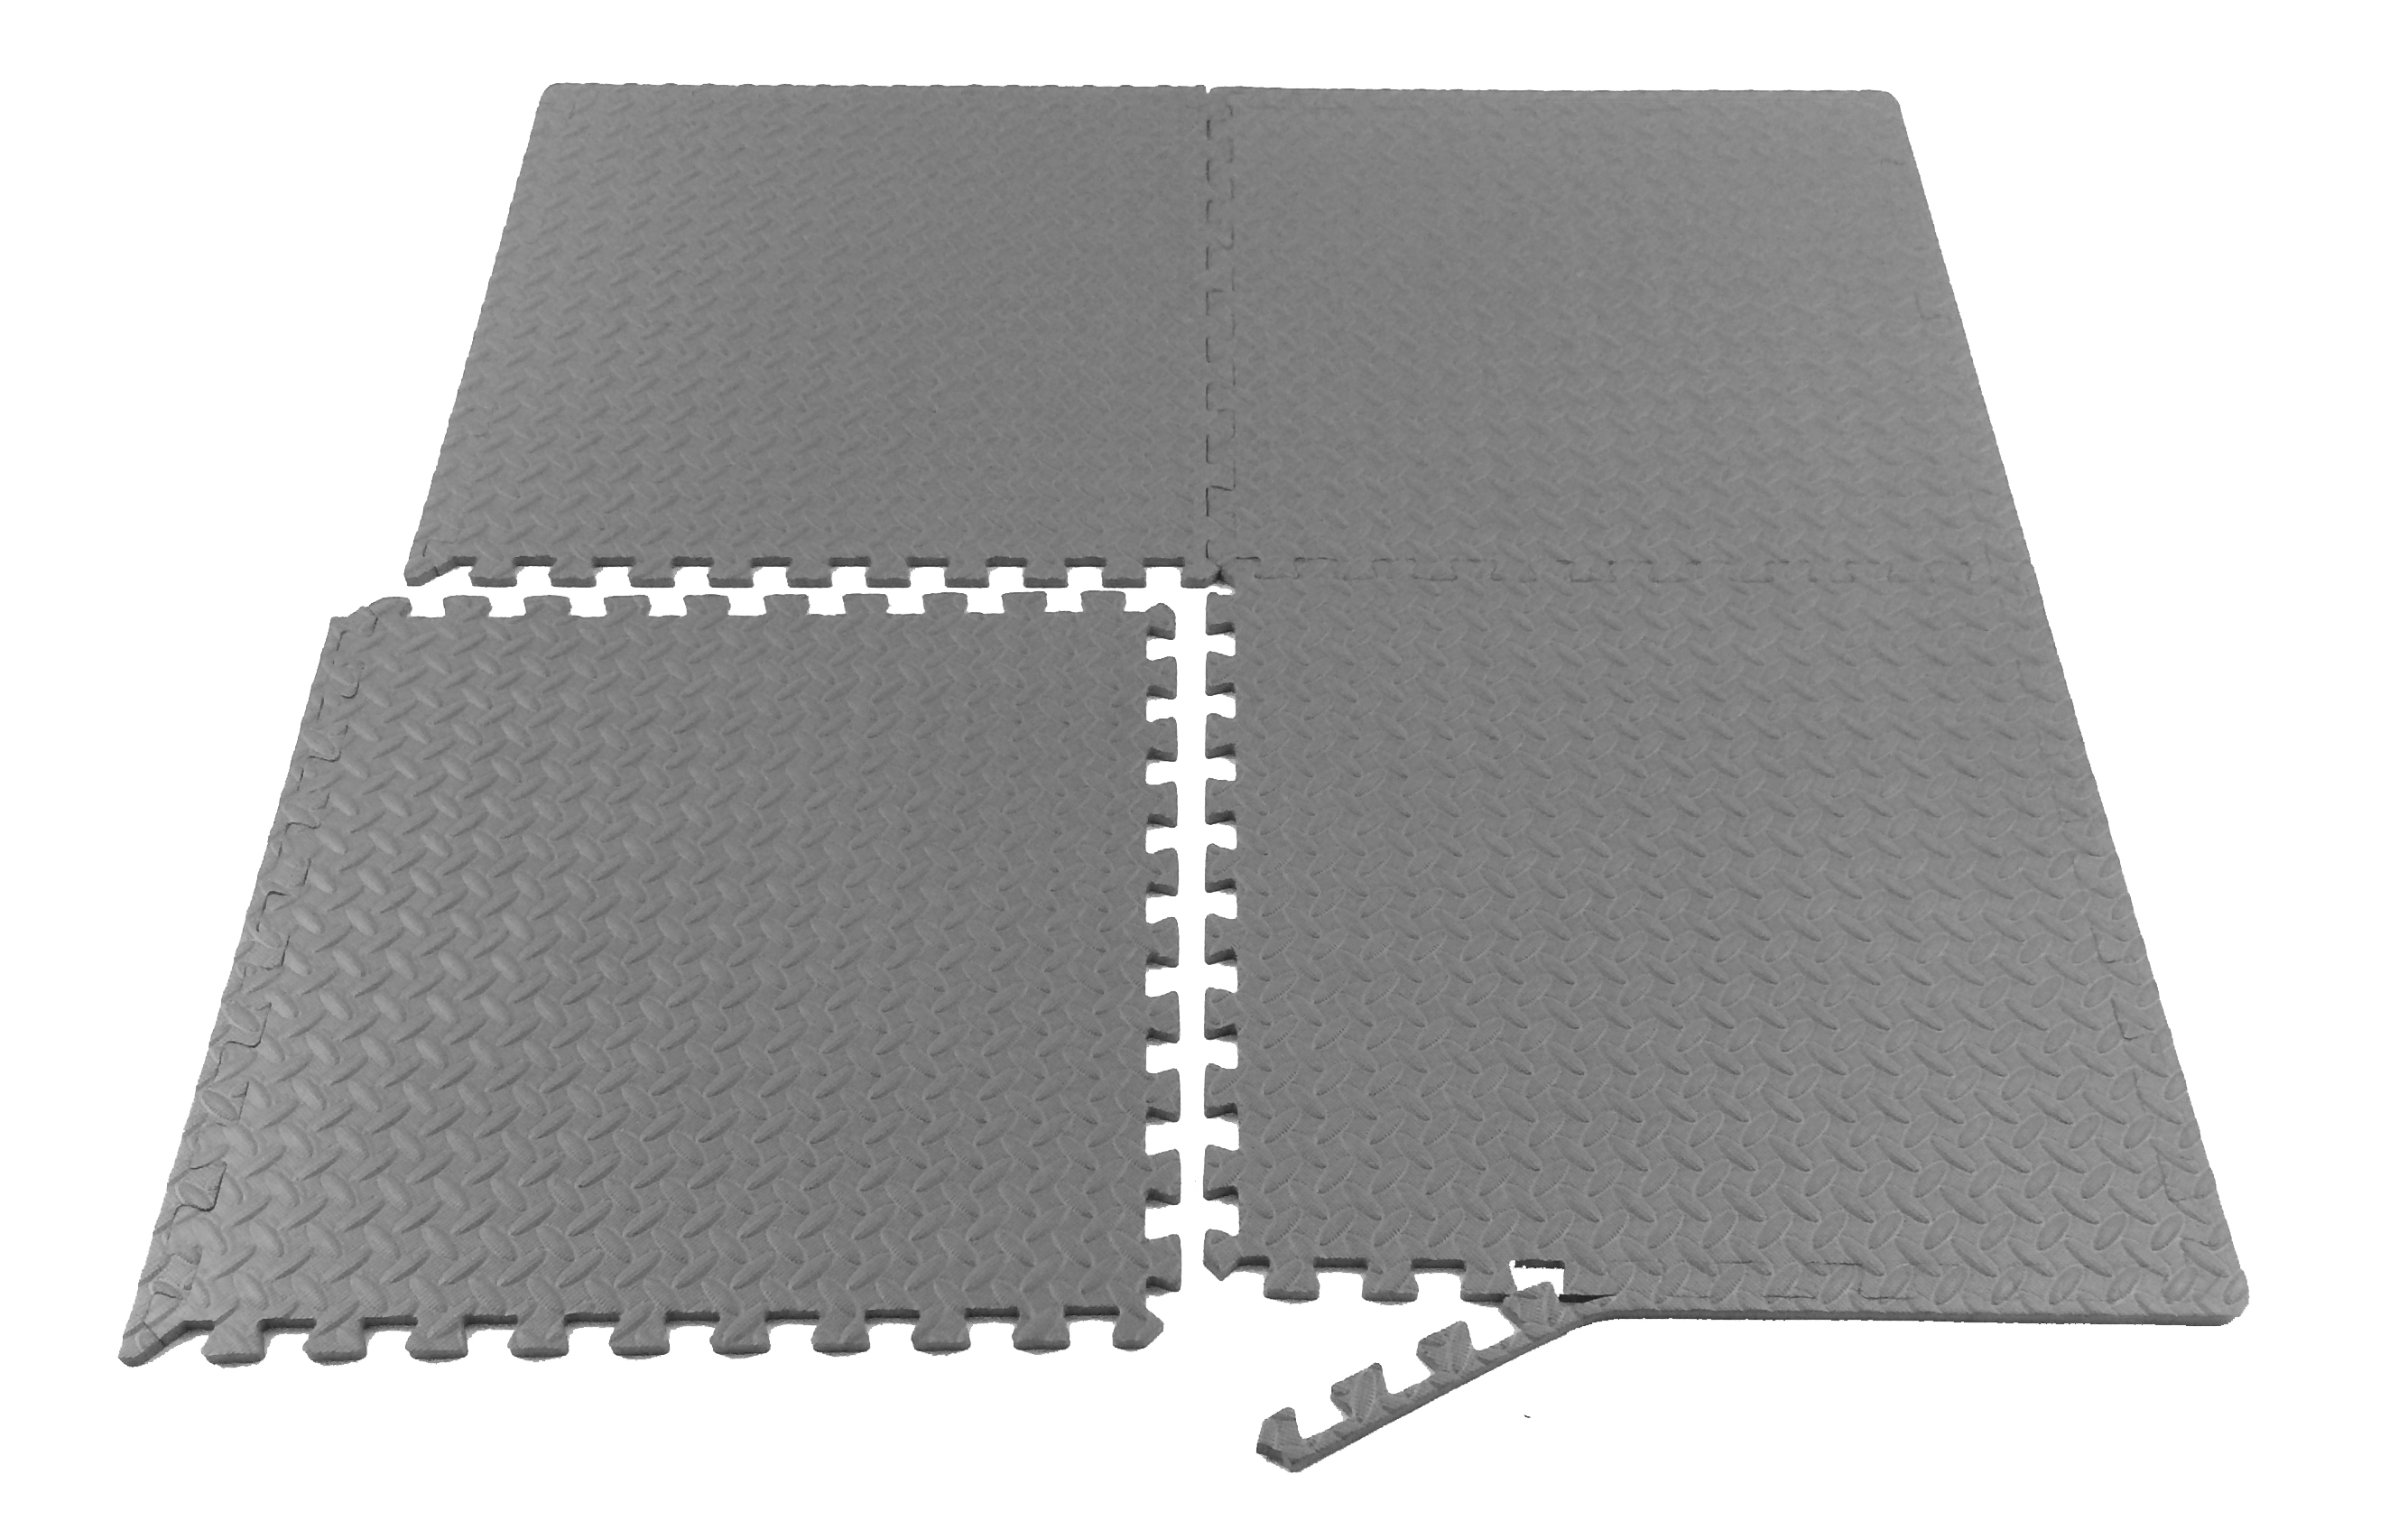 Puzzle mat flooring home design ideas and pictures attractive prosource puzzle exercise floor tiles mat eva foam dailygadgetfo Gallery